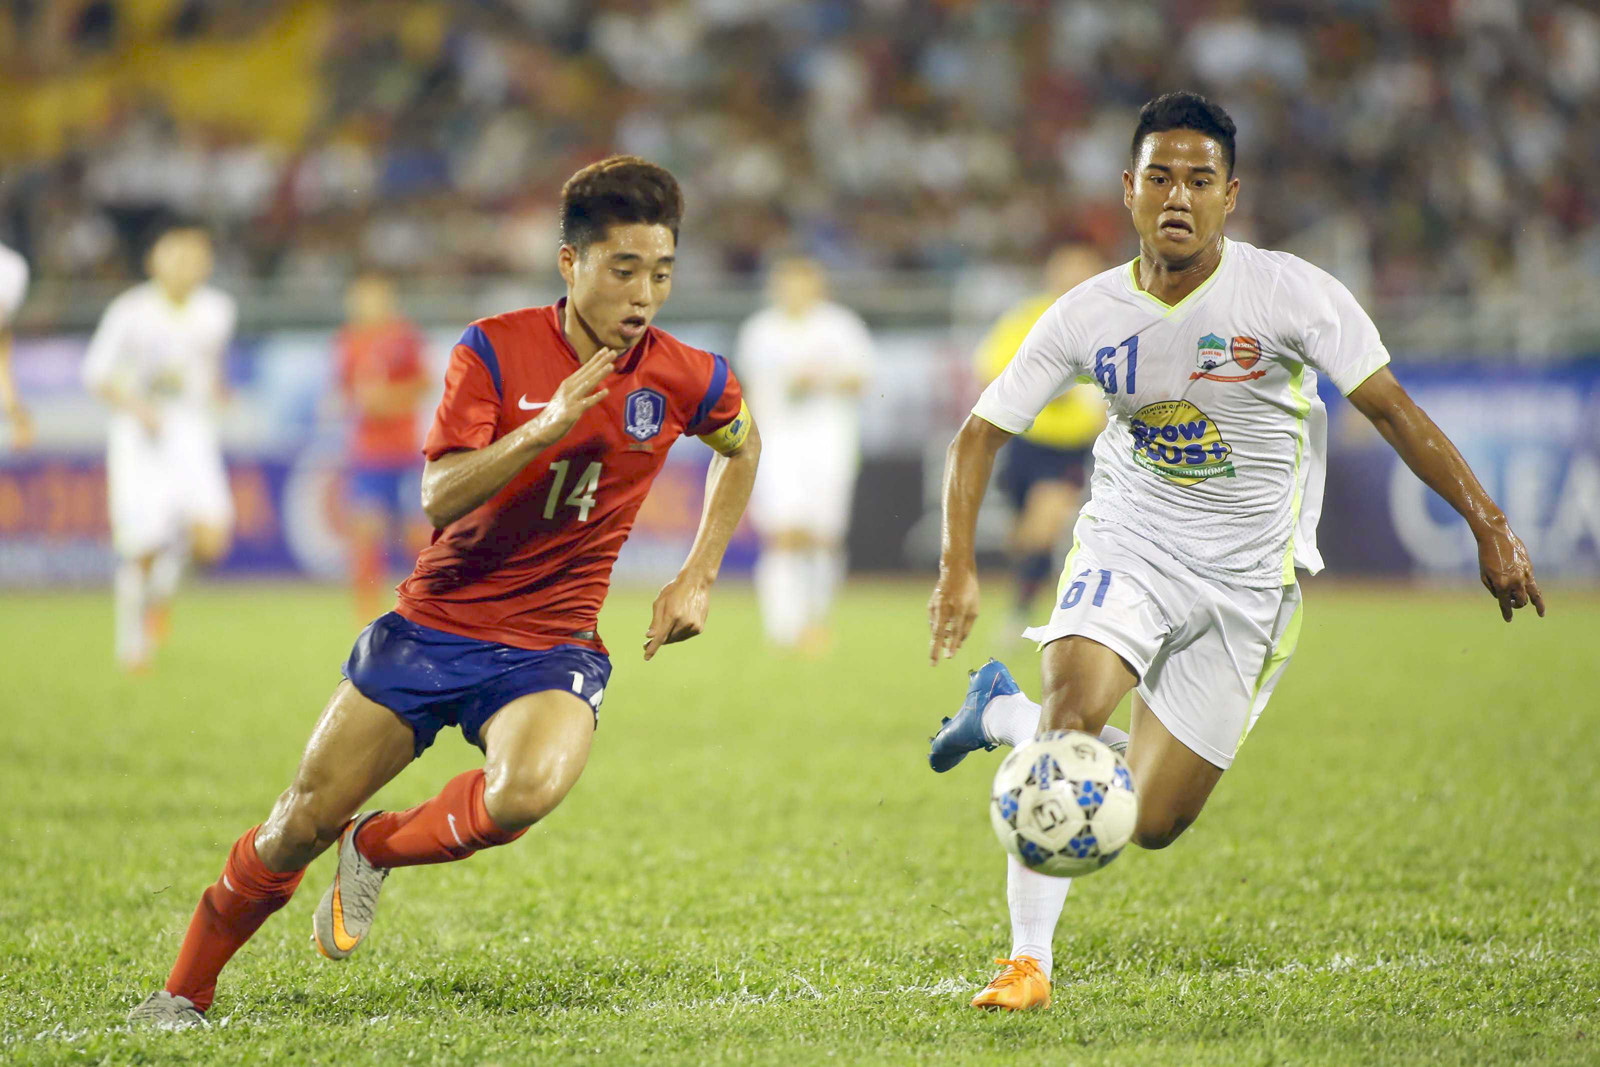 Vietnamese footballer to play in RoK tournament